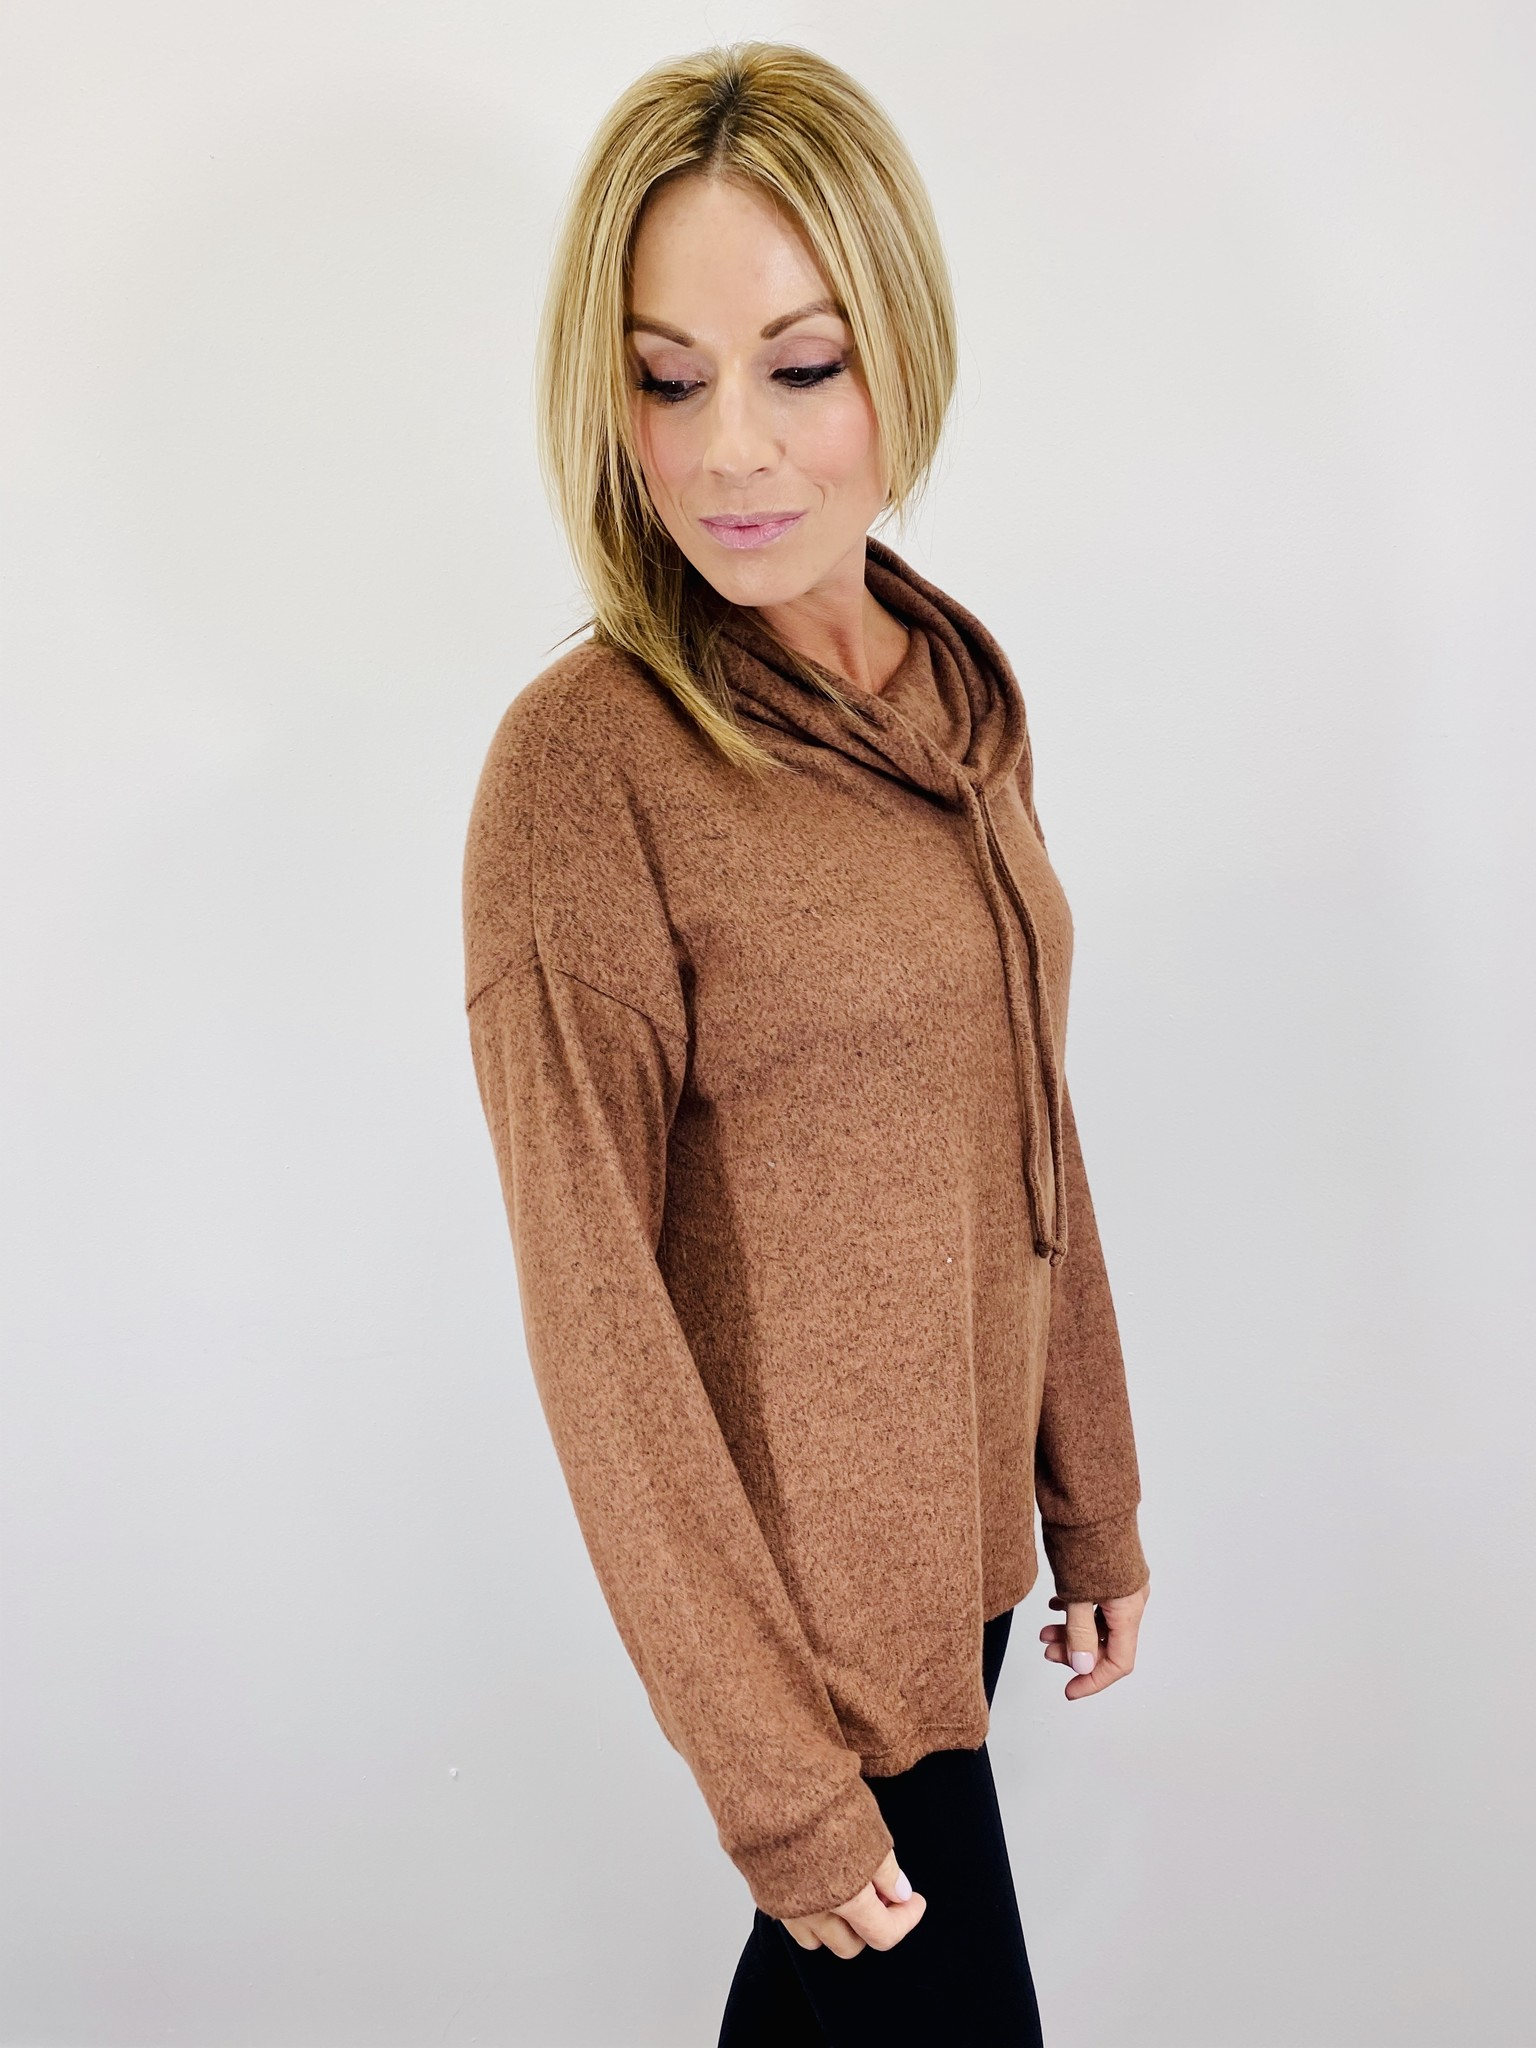 Hem & Thread Cowl Neck Knit Top in Brown